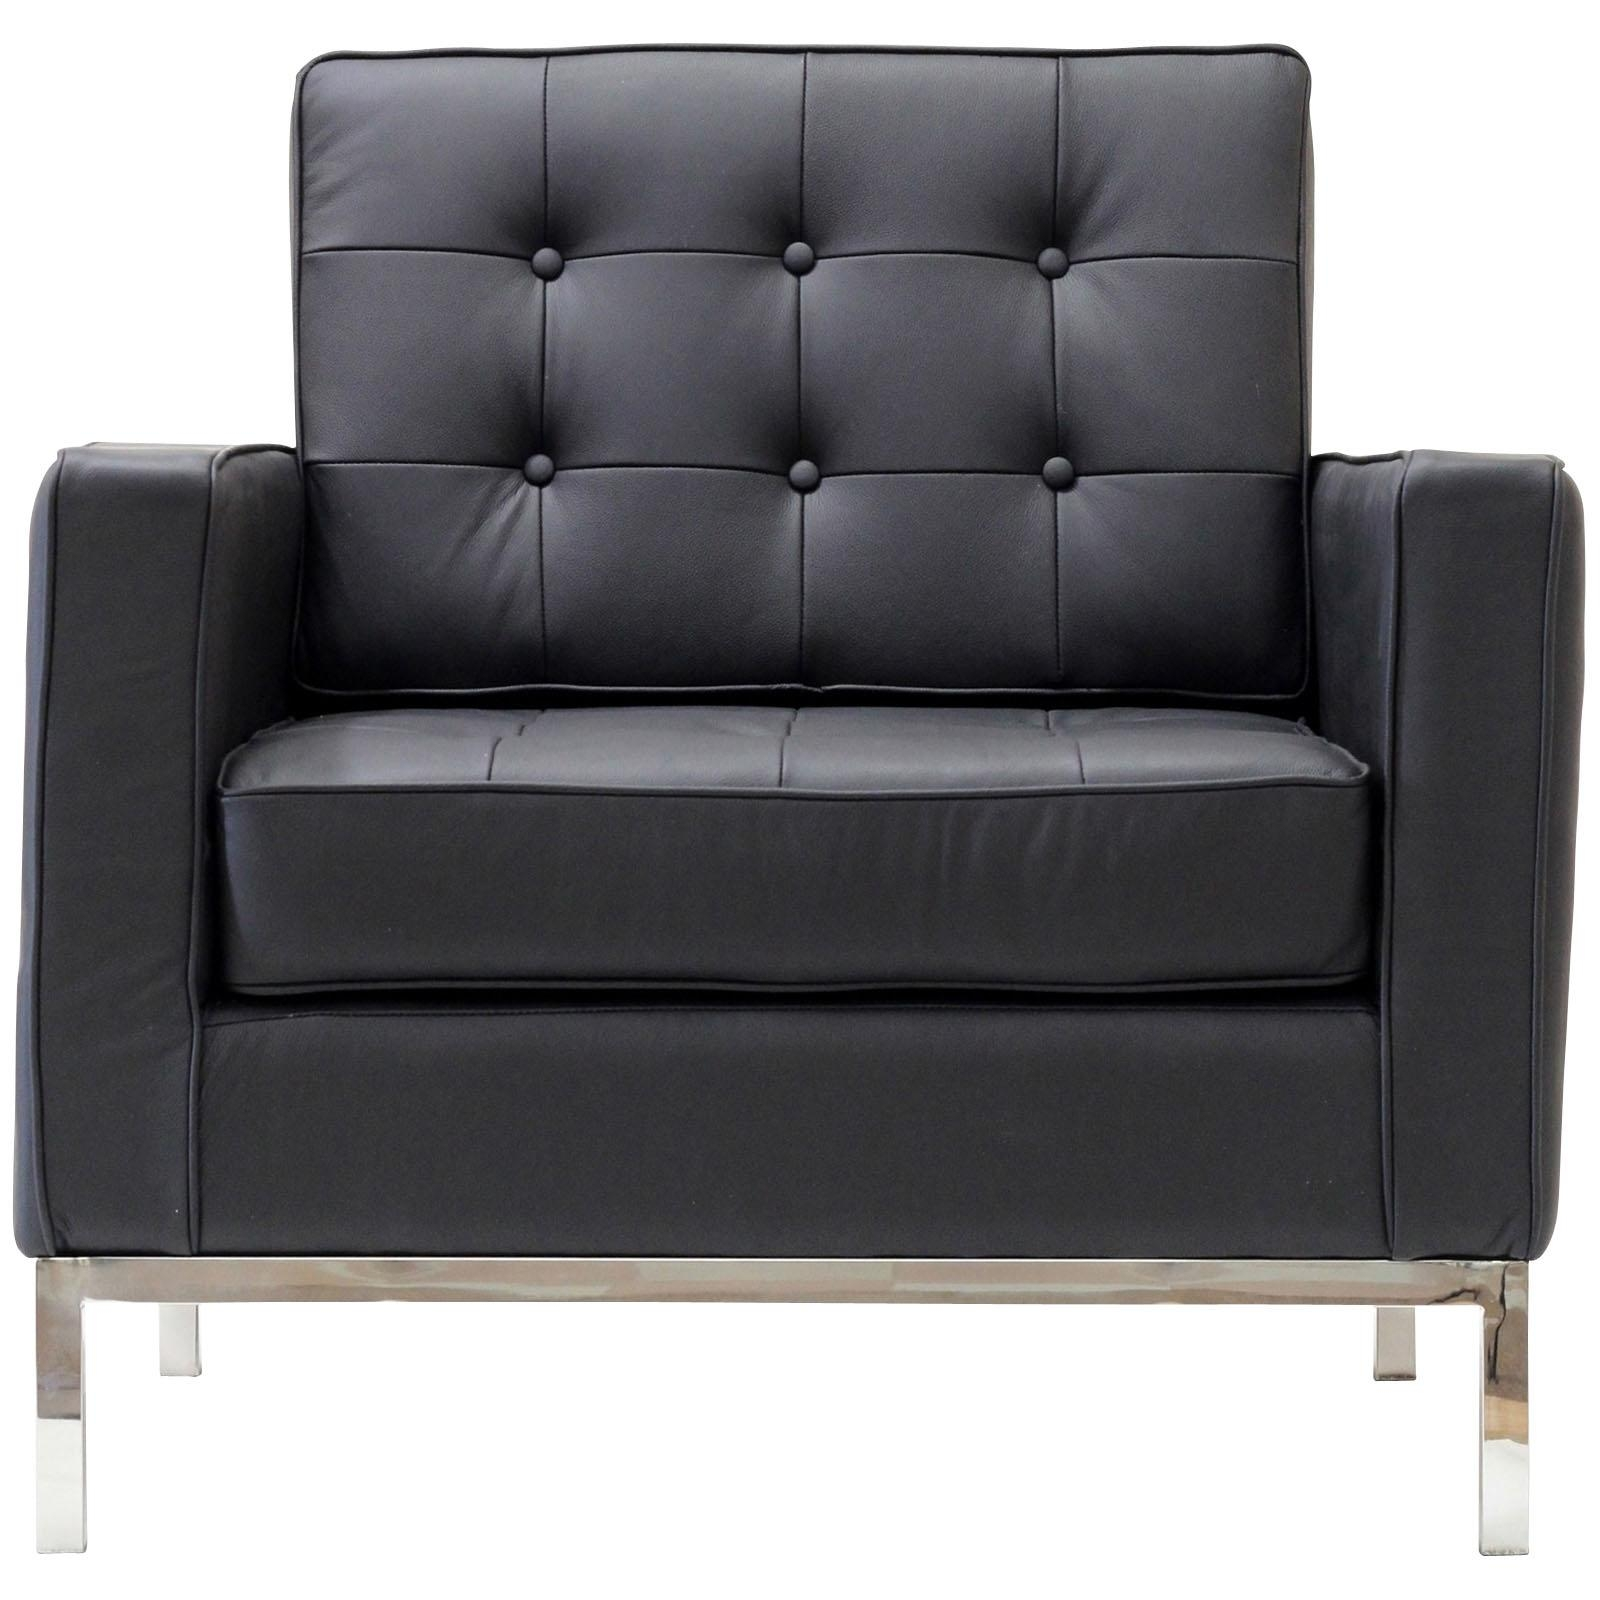 Chair Bradington Truffle Sofa Loveseat And Accent Chair Set Sofas For Bradington Truffle (Image 13 of 20)